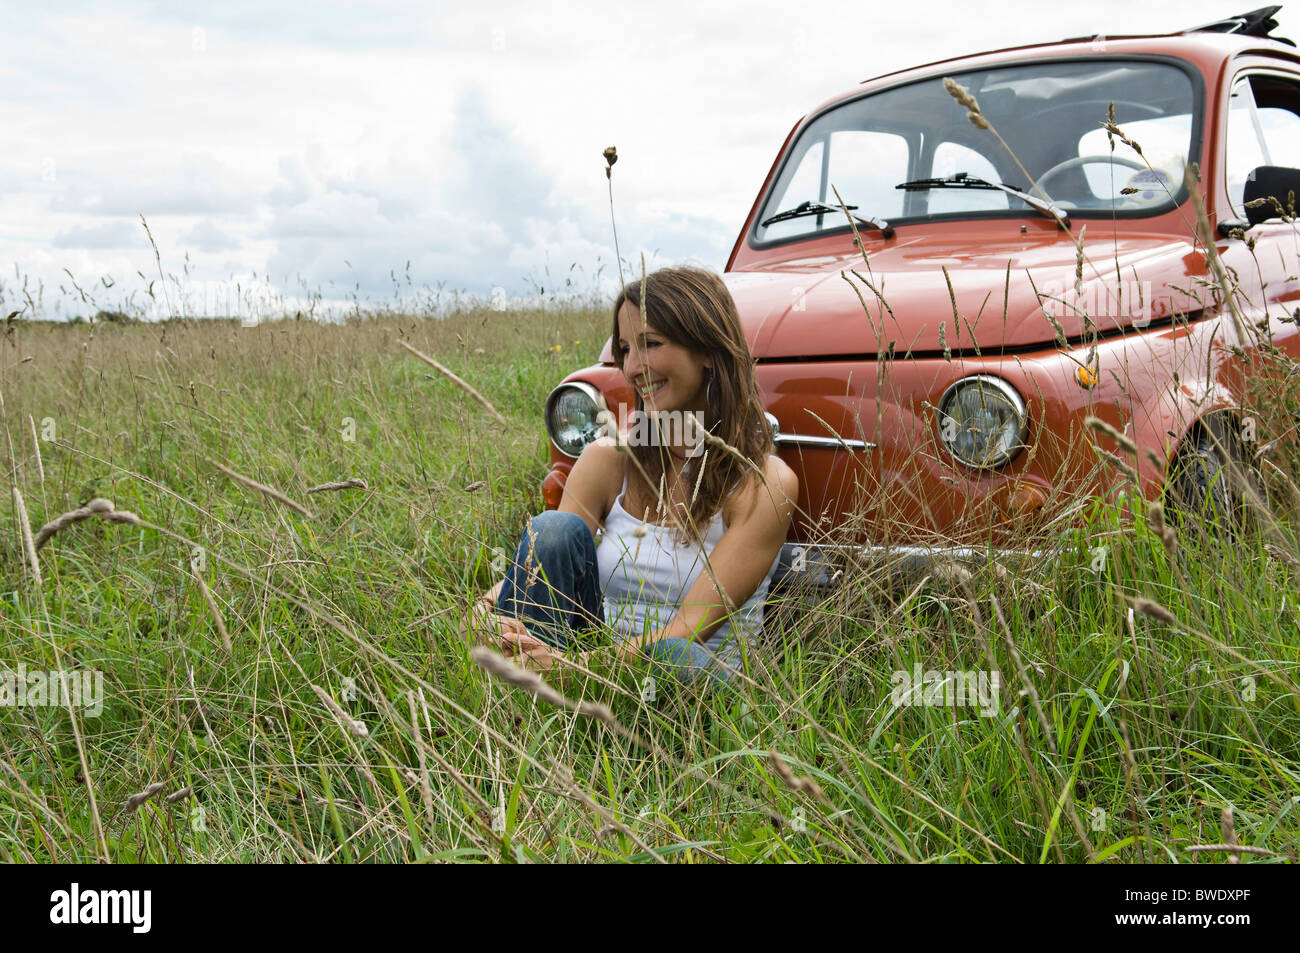 Relaxed female by car in countryside - Stock Image